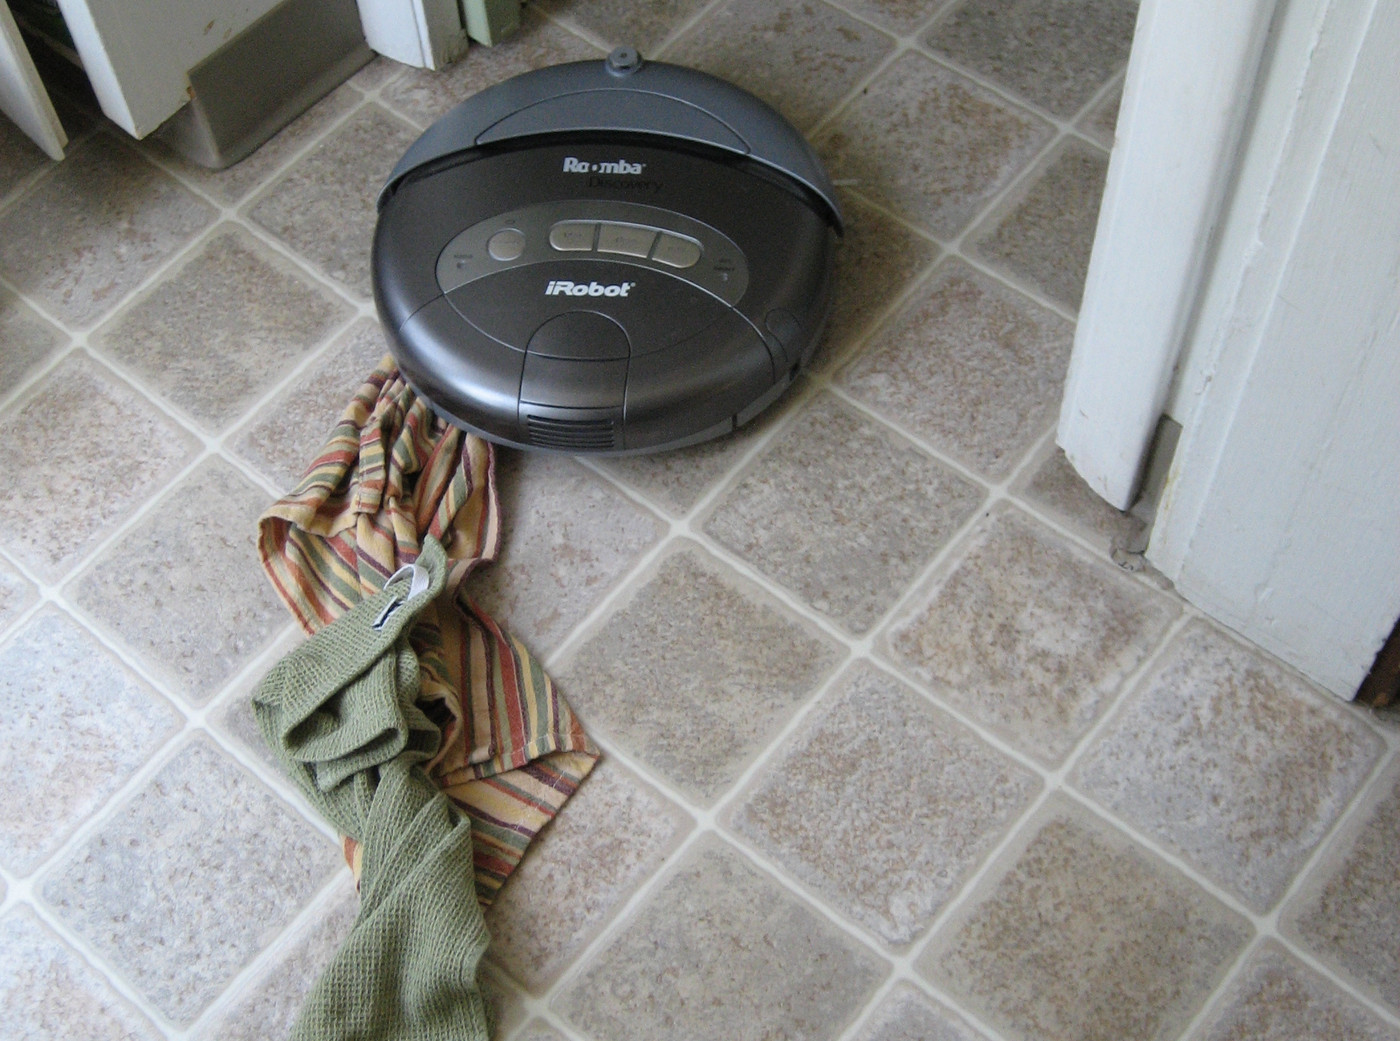 A Roomba smeared dog poop all over this man's house  There's